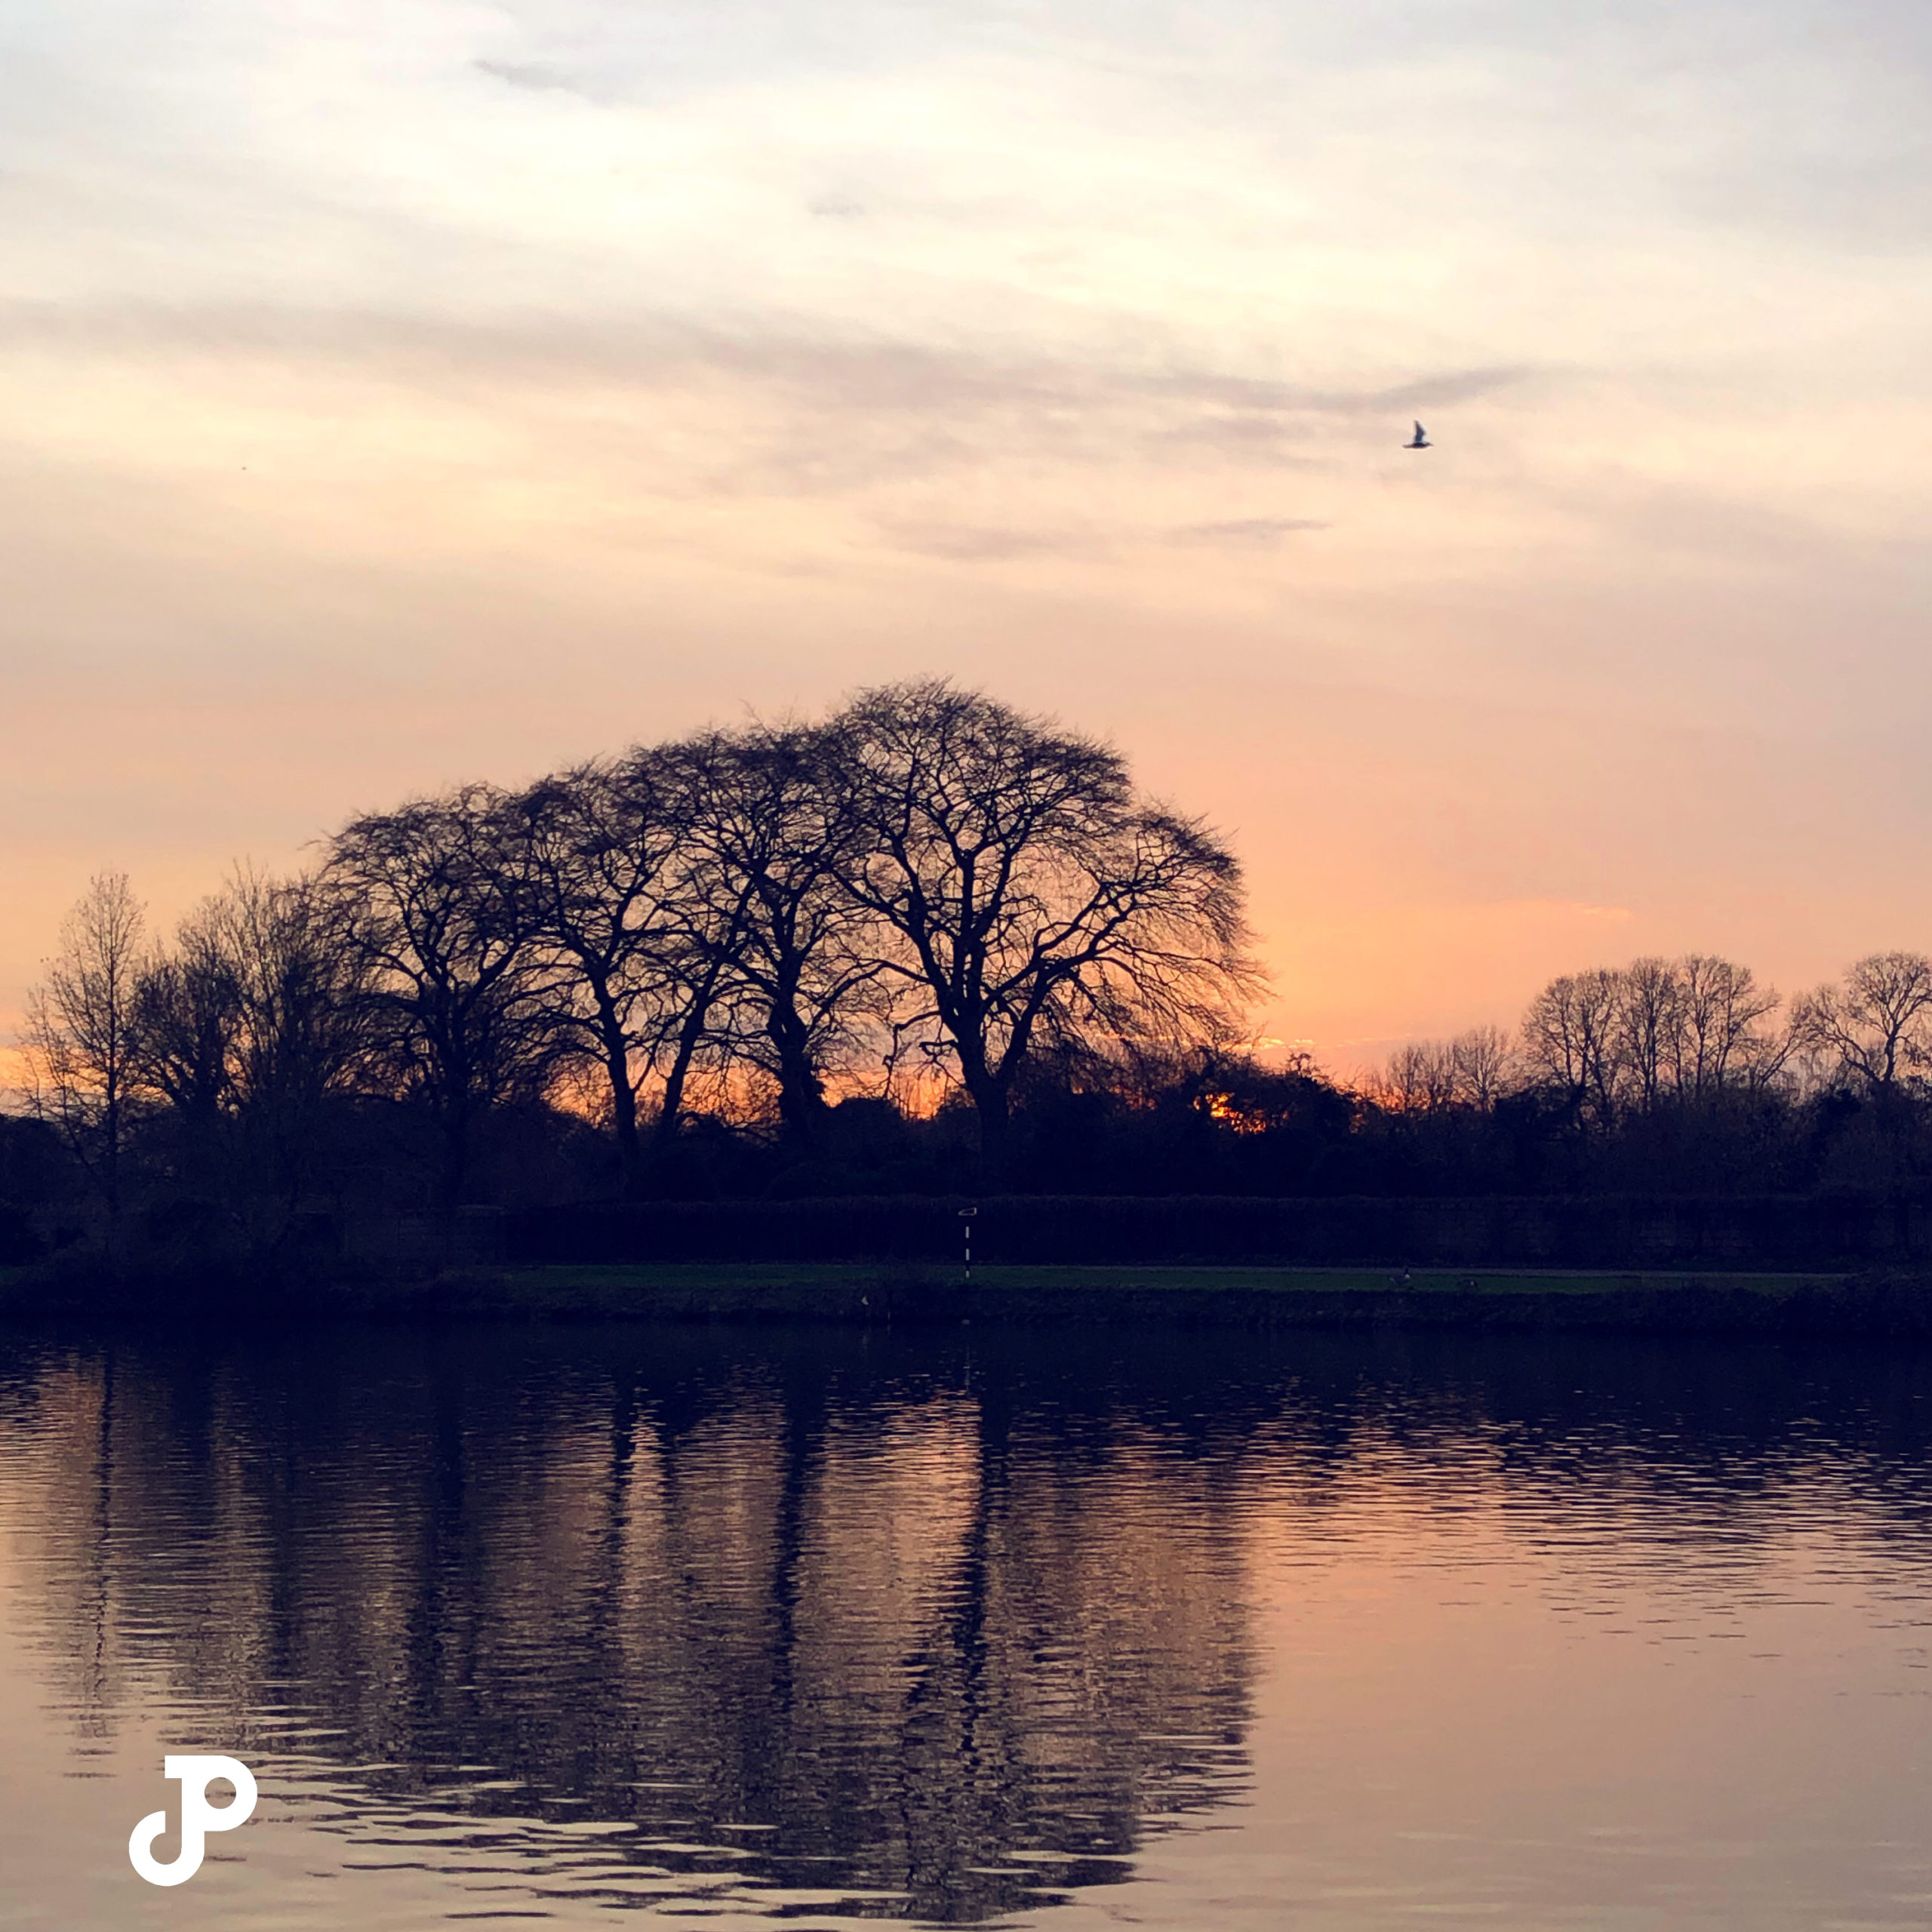 a vibrant orange and pink sunset over the River Thames in Kingston Upon Thames